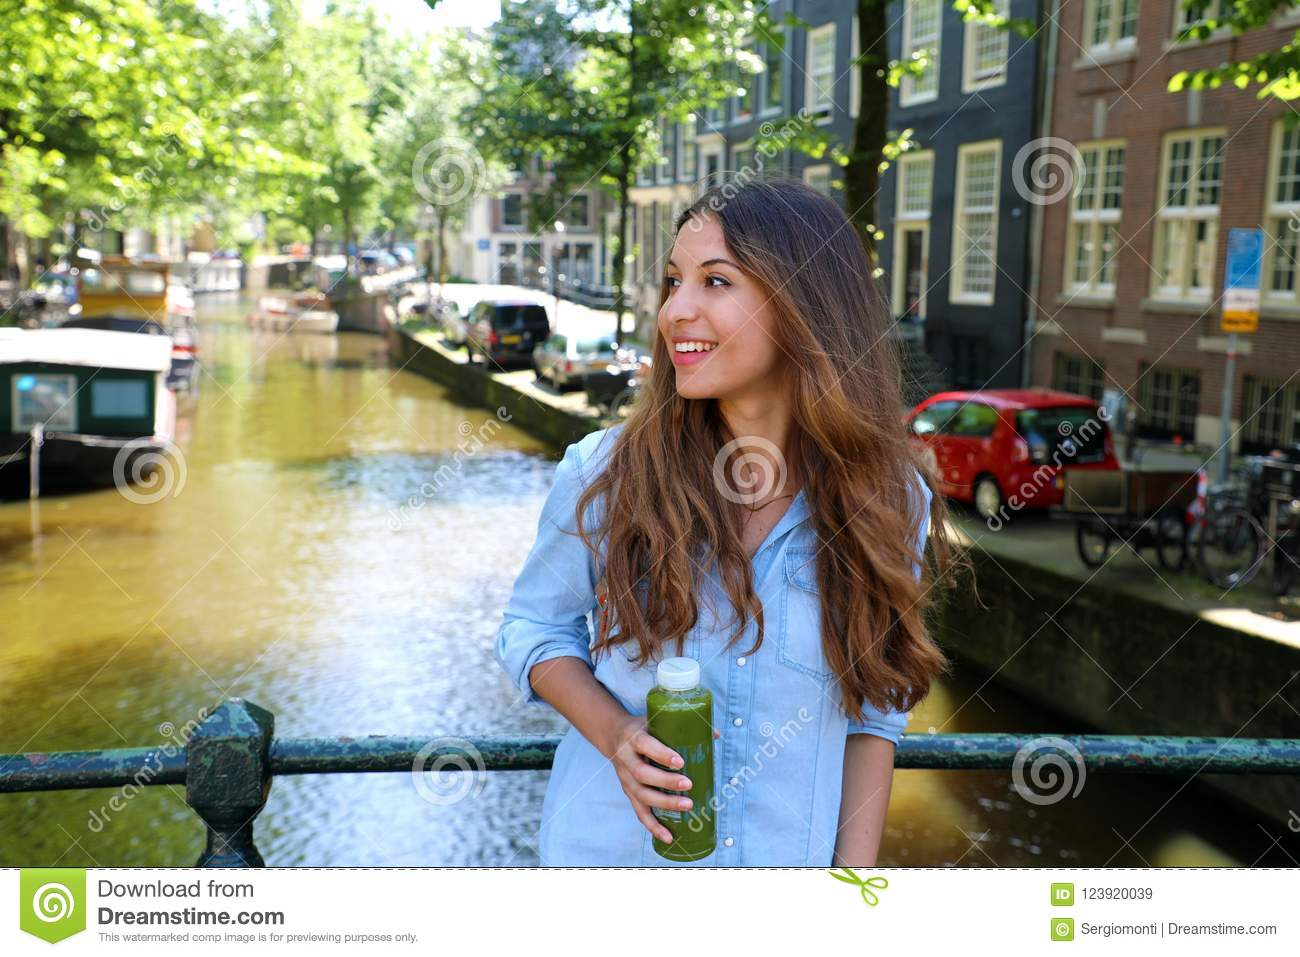 Urban city lifestyle hipster girl drinks green juice on Amsterdam canal, Netherlands. Healthy detox vegan diet with vegetable cold